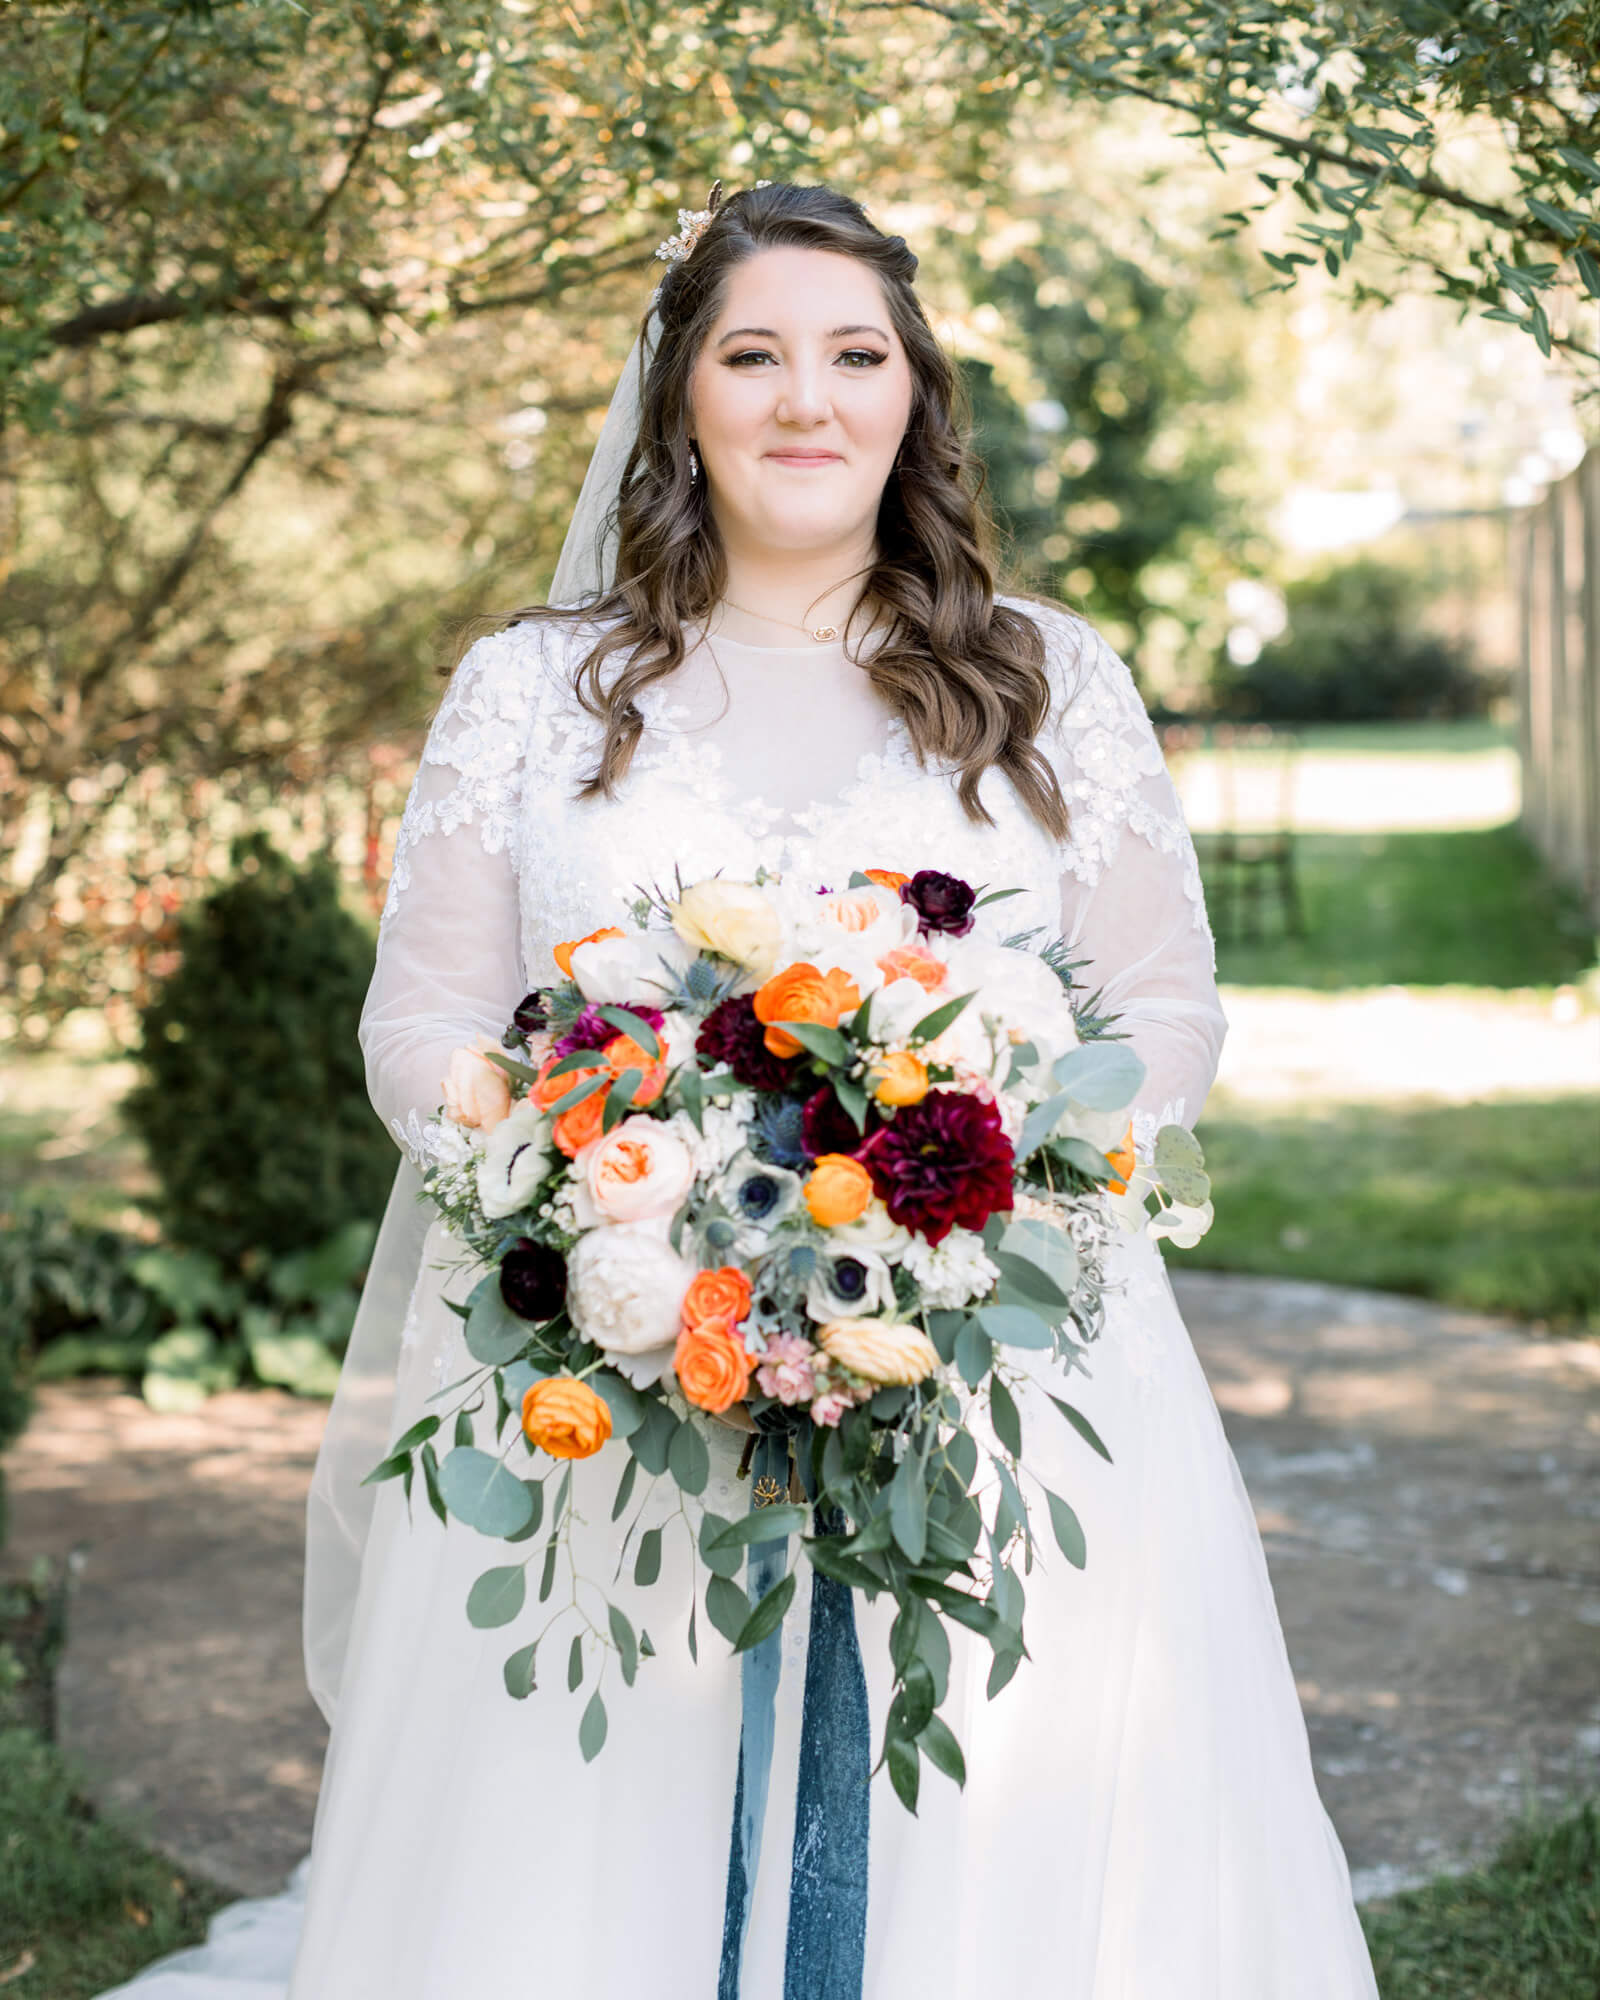 Abbey looked absolutely gorgeous in her customized cocomelody wedding dress